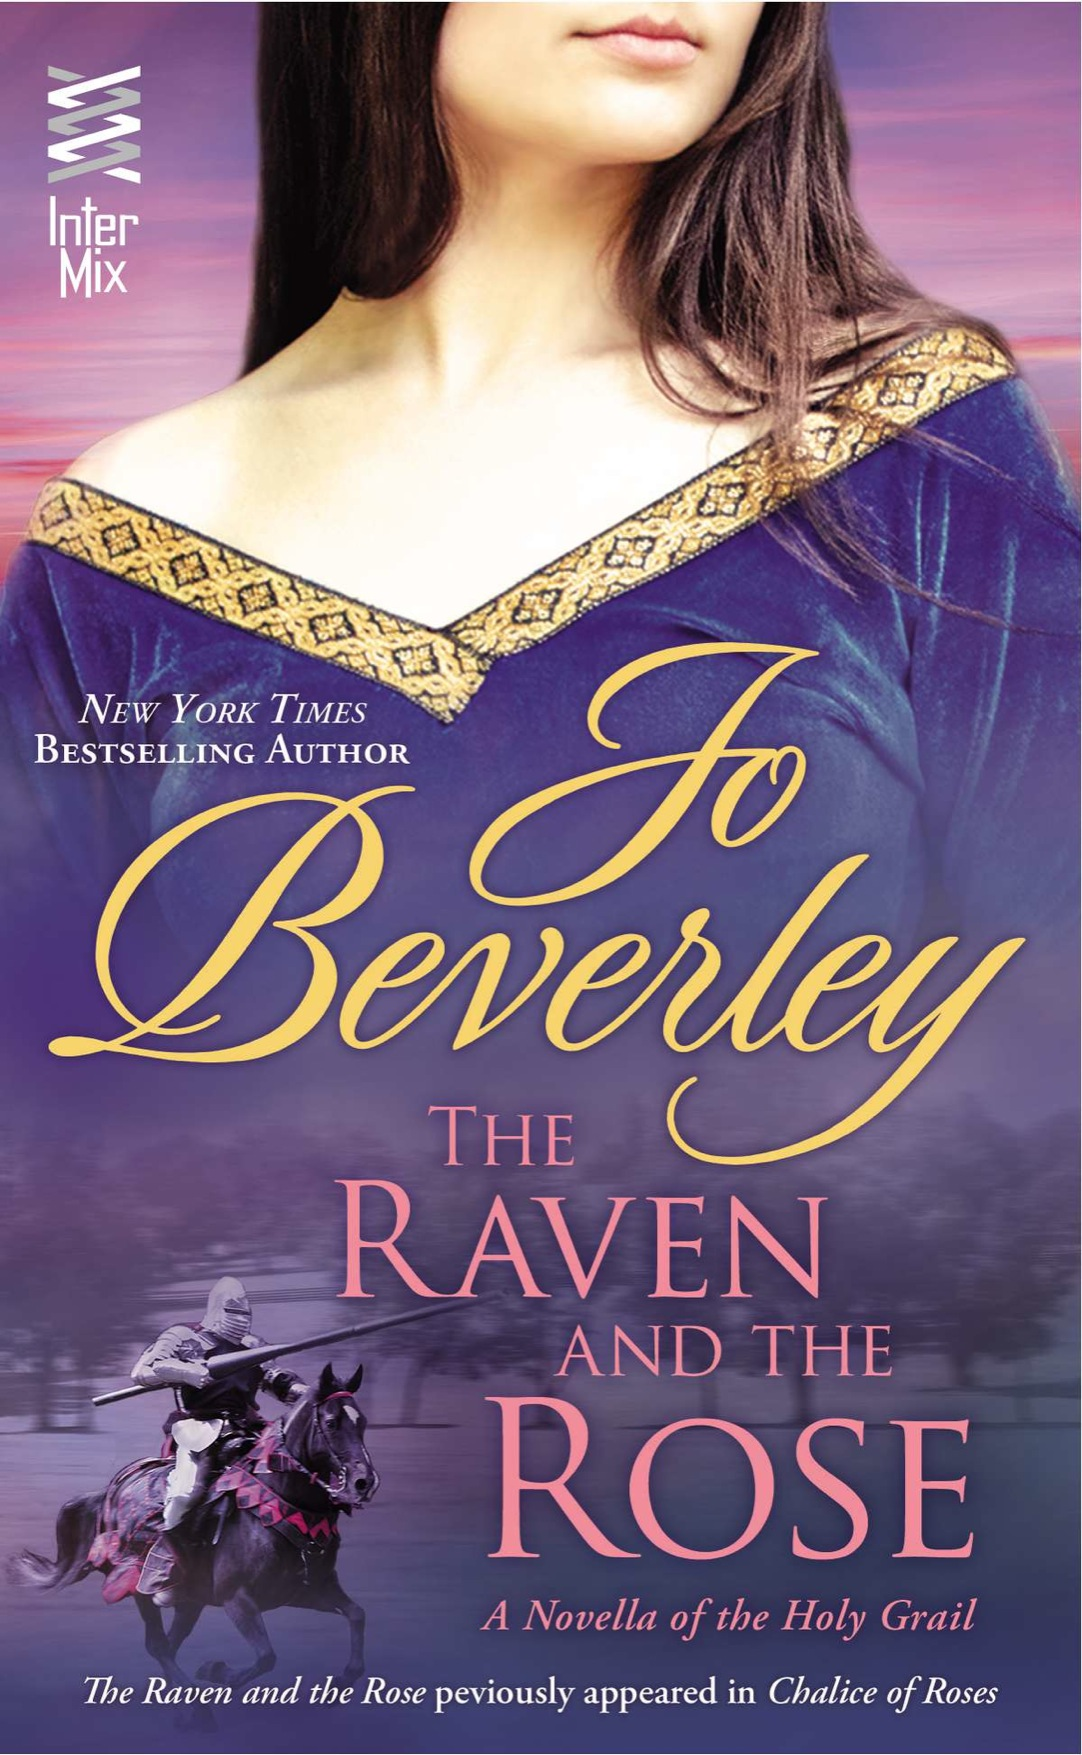 The Raven and the Rose (2014)